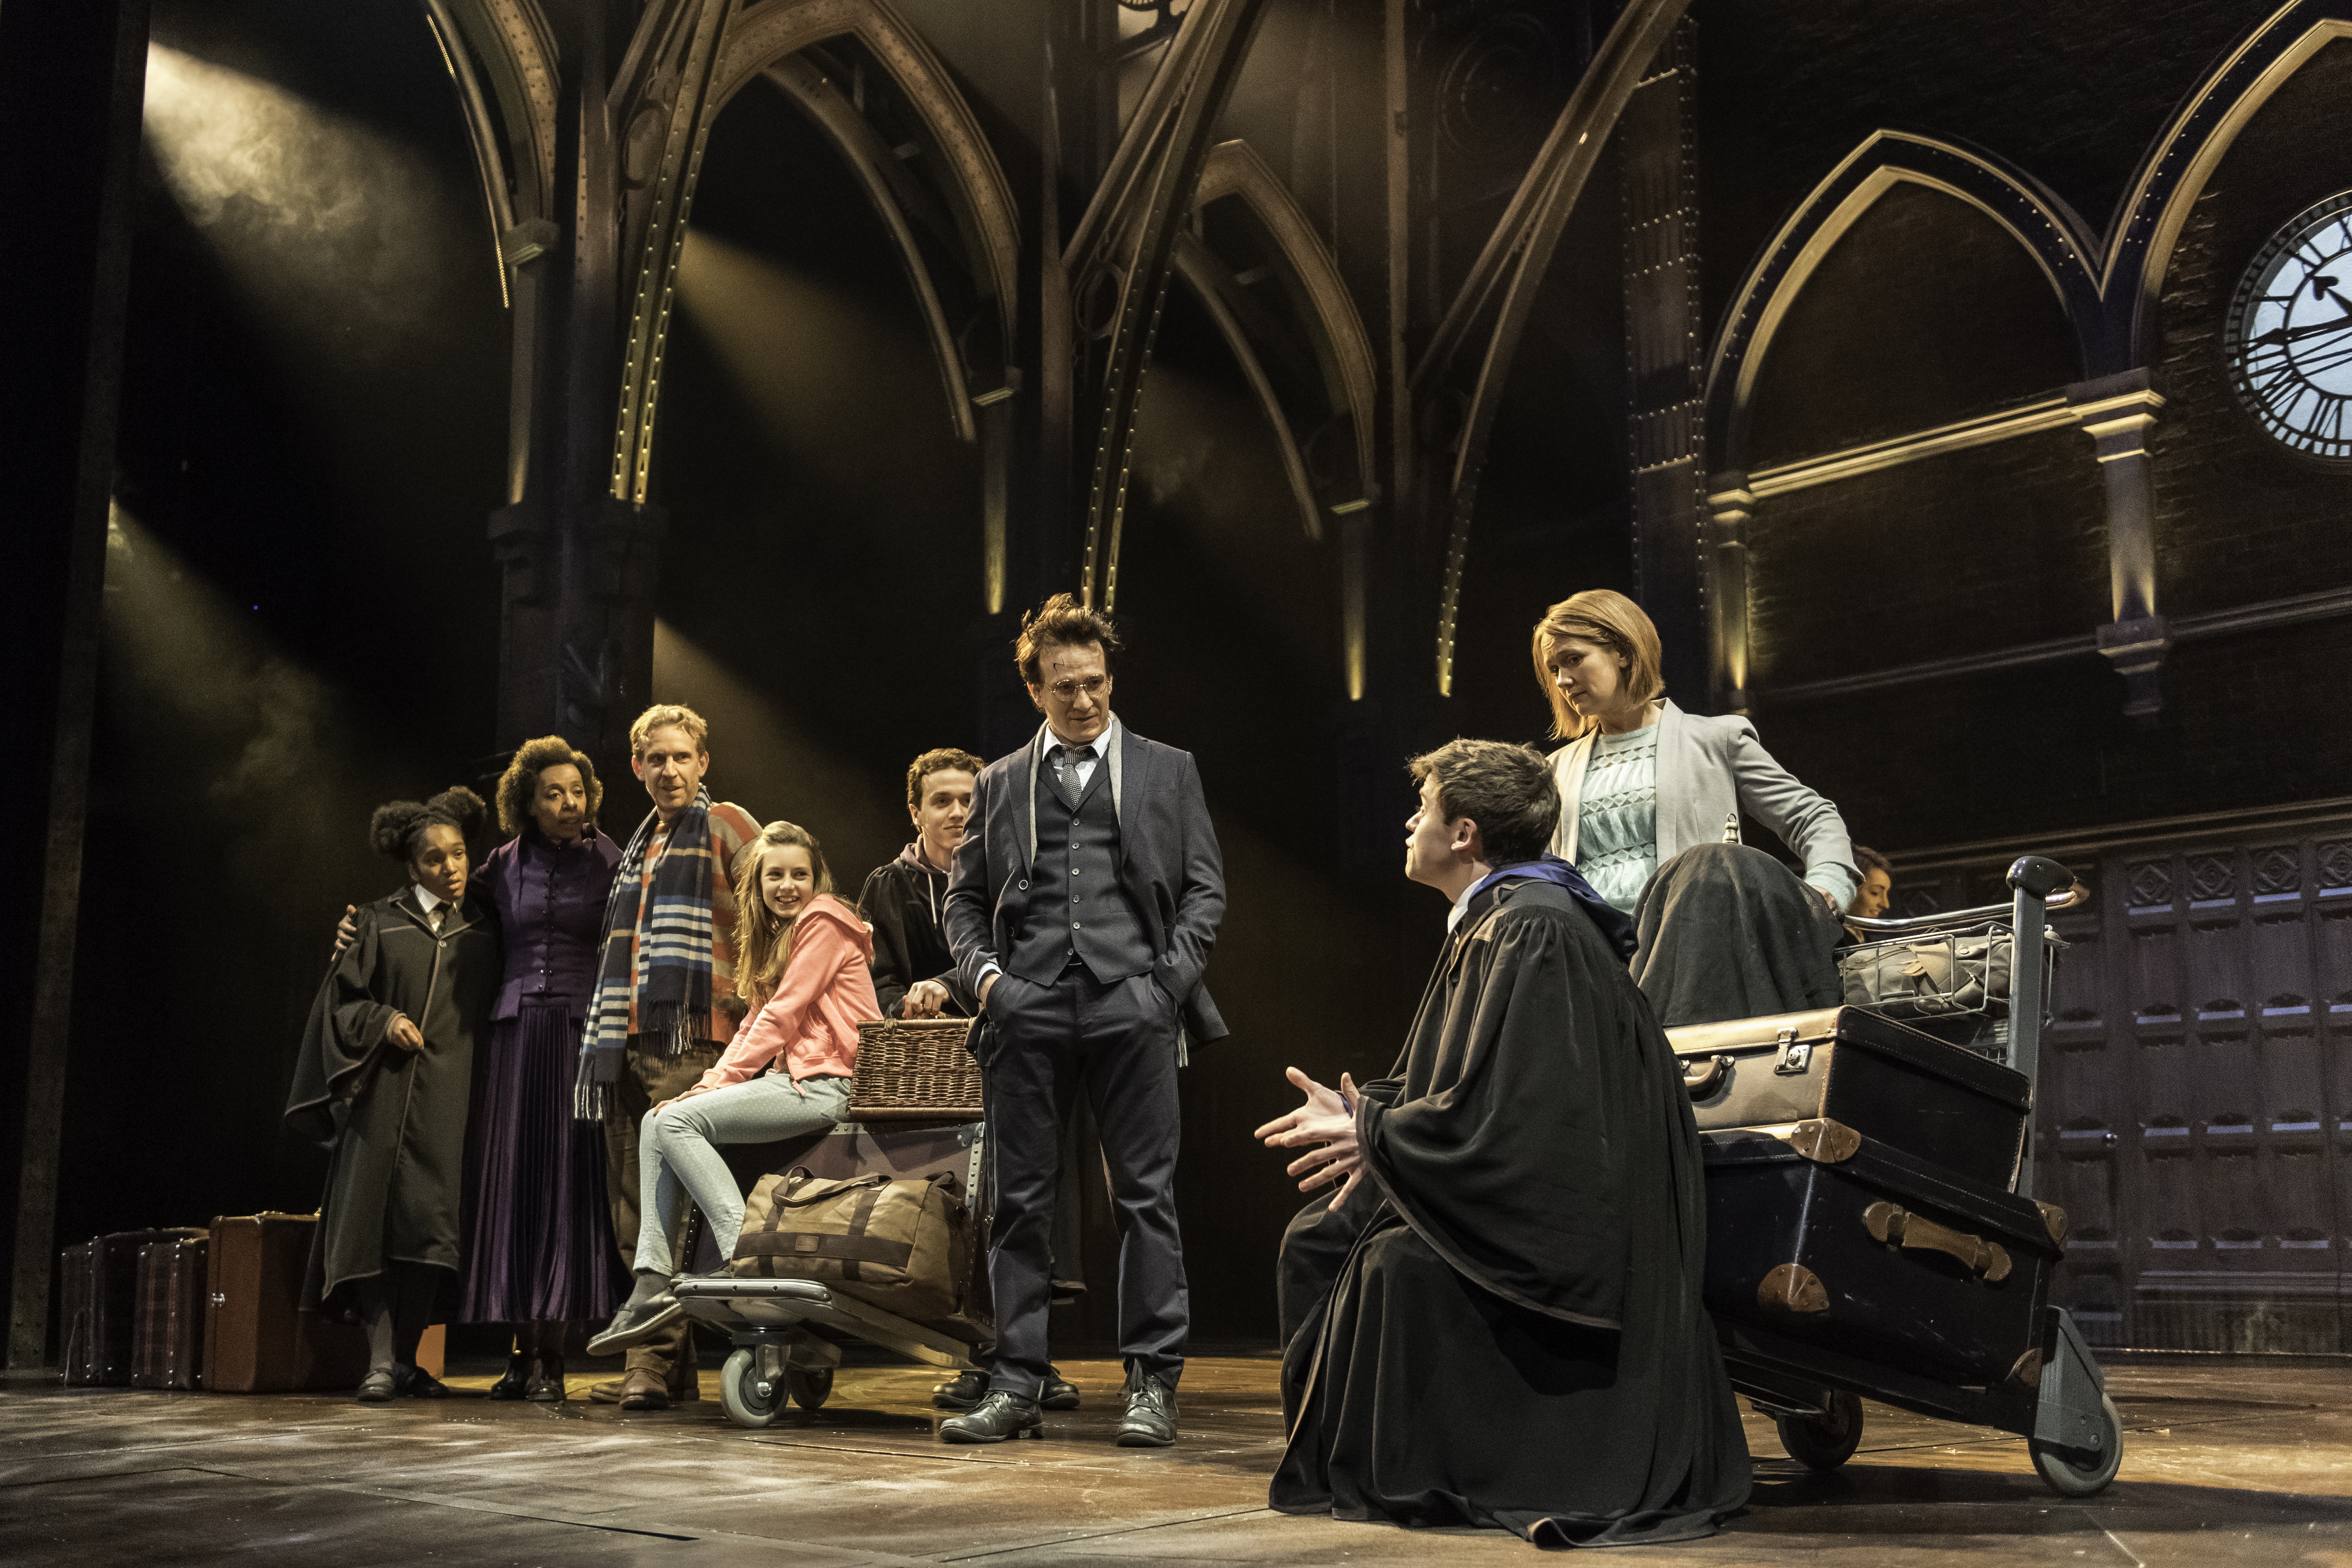 12. Harry Potter and the Cursed Child, photo credit Manuel Harlan